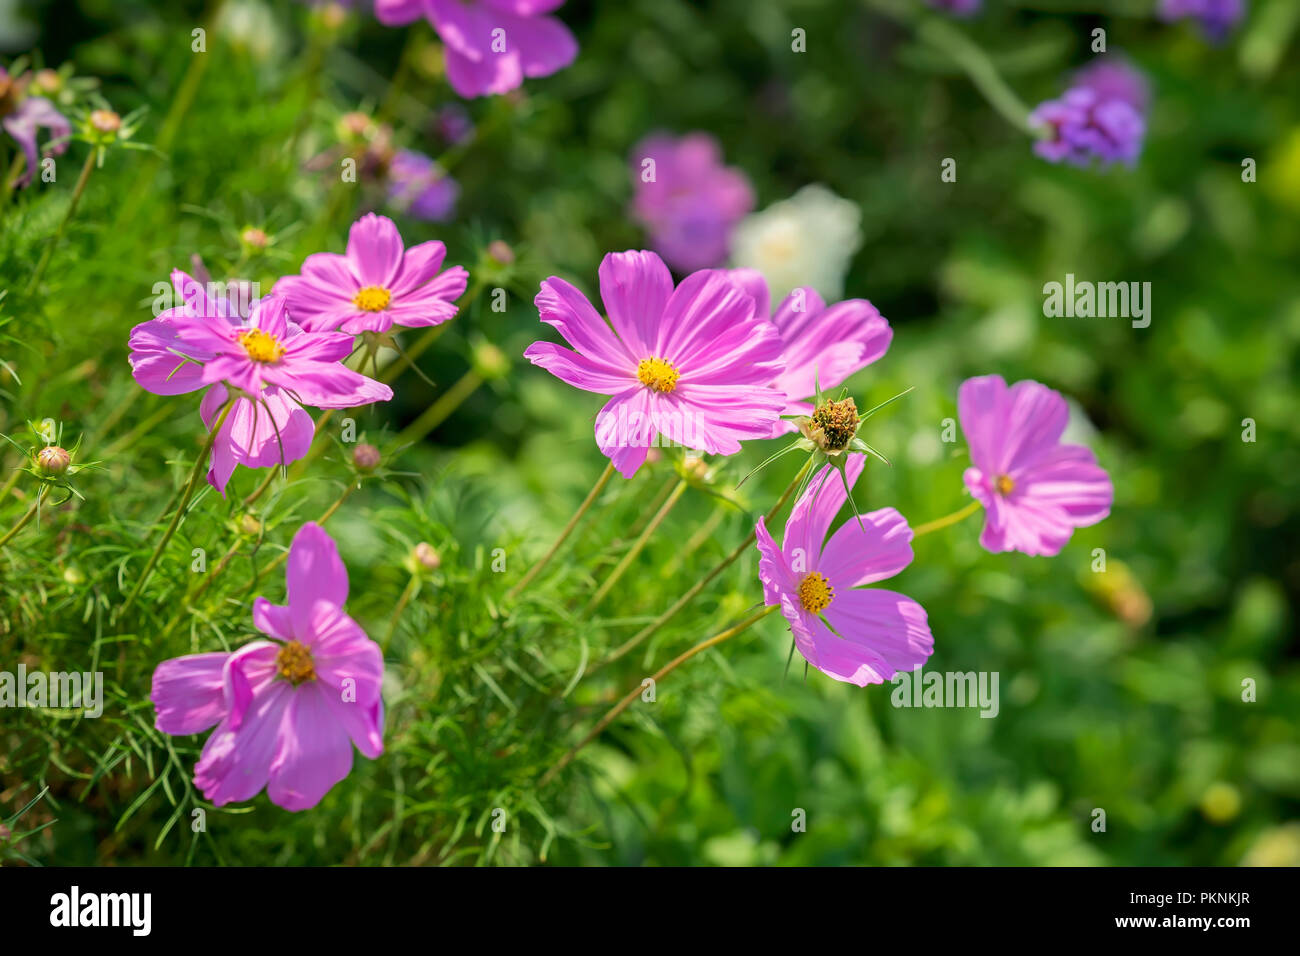 Cosmos Flowers Herbaceous Plants Elegant Plants With Pink Purple